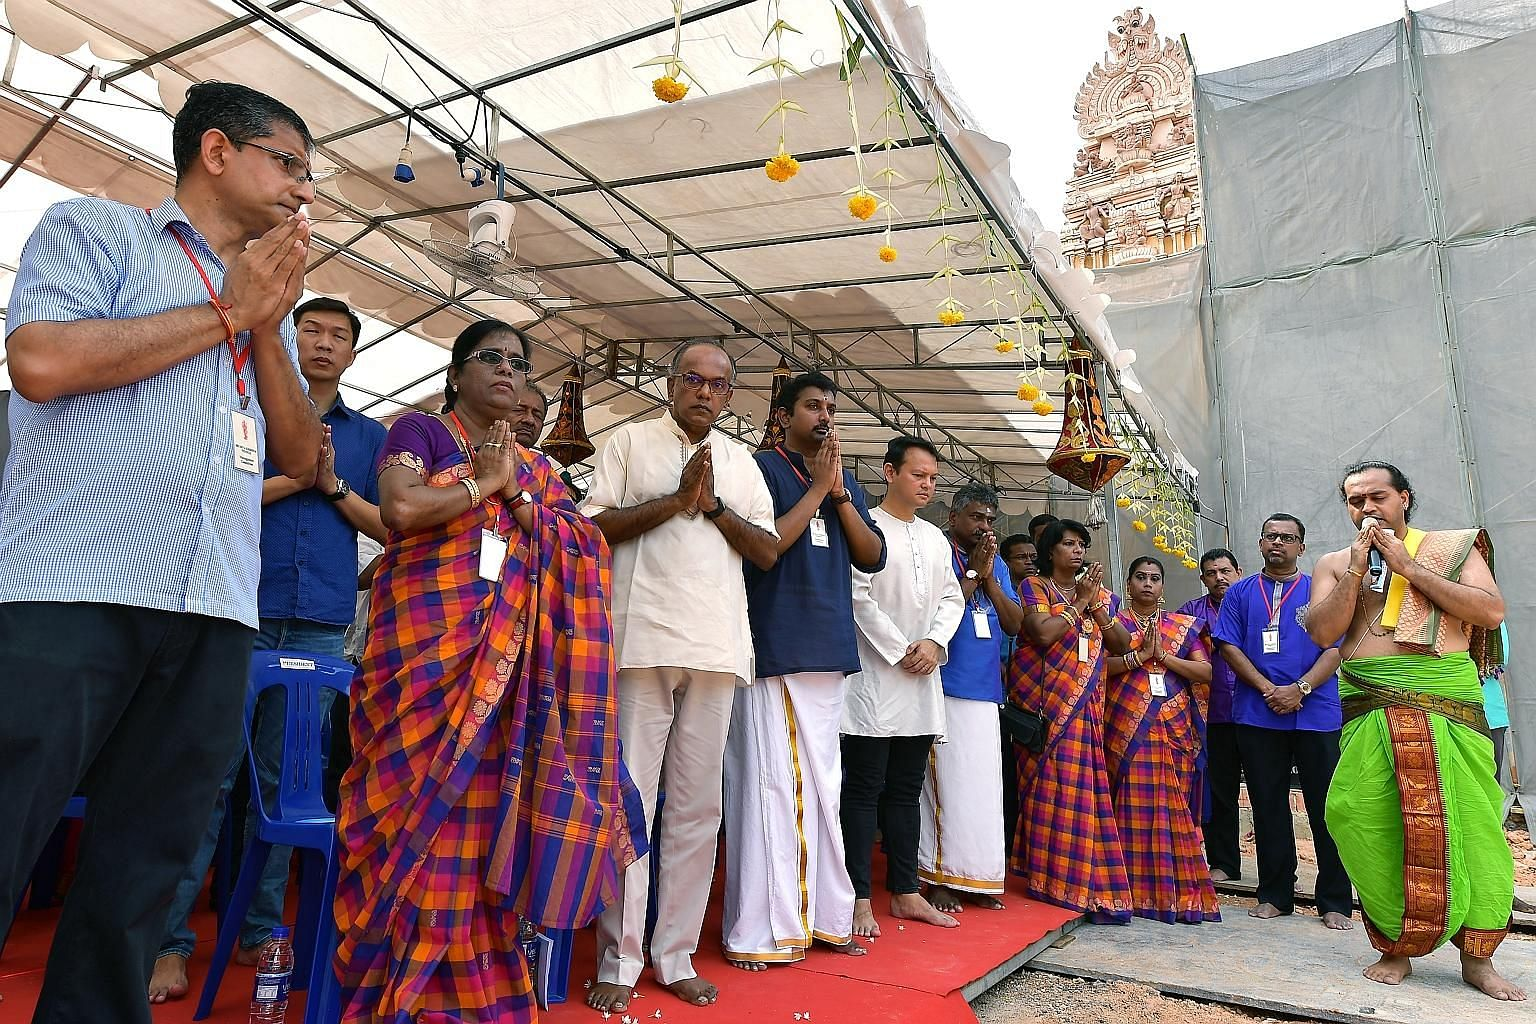 Law and Home Affairs Minister K. Shanmugam (front row, third from left) and Minister of State for National Development and Manpower Zaqy Mohamad (front row, fifth from left) at the ground-breaking ceremony for the Sri Siva Krishna Temple's annex yest